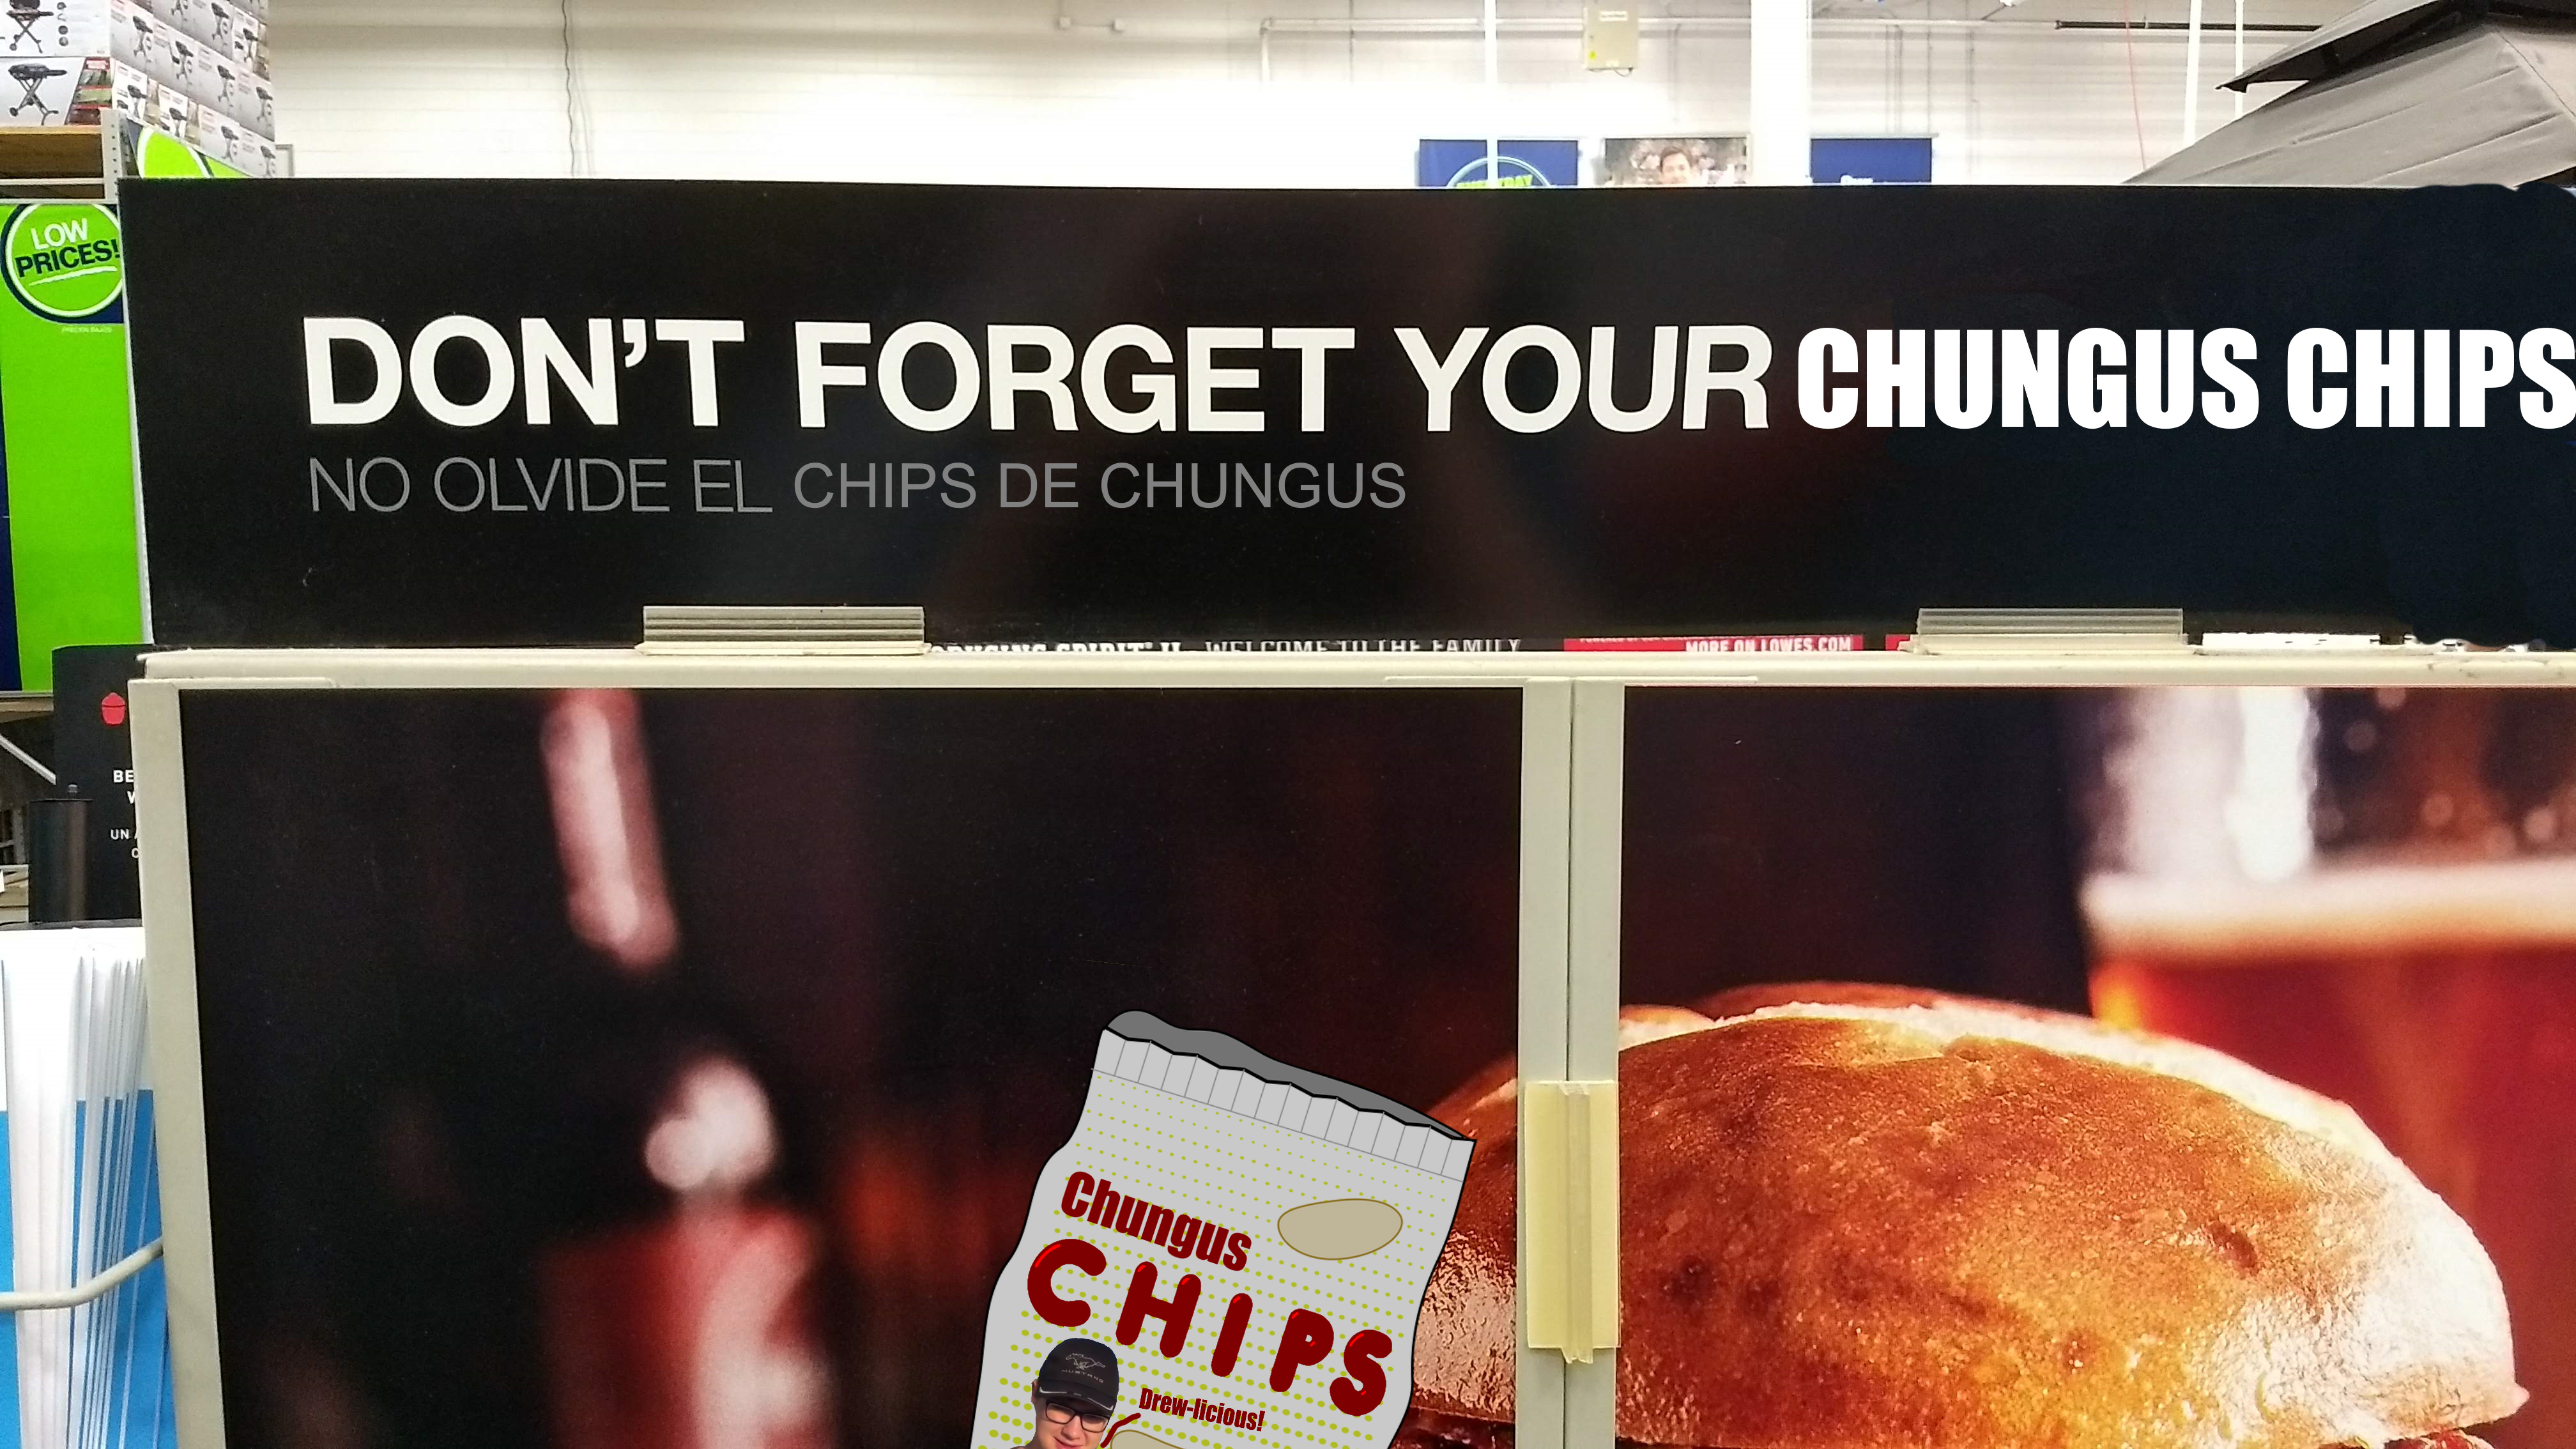 Image of Lowe's Chungus chips sign